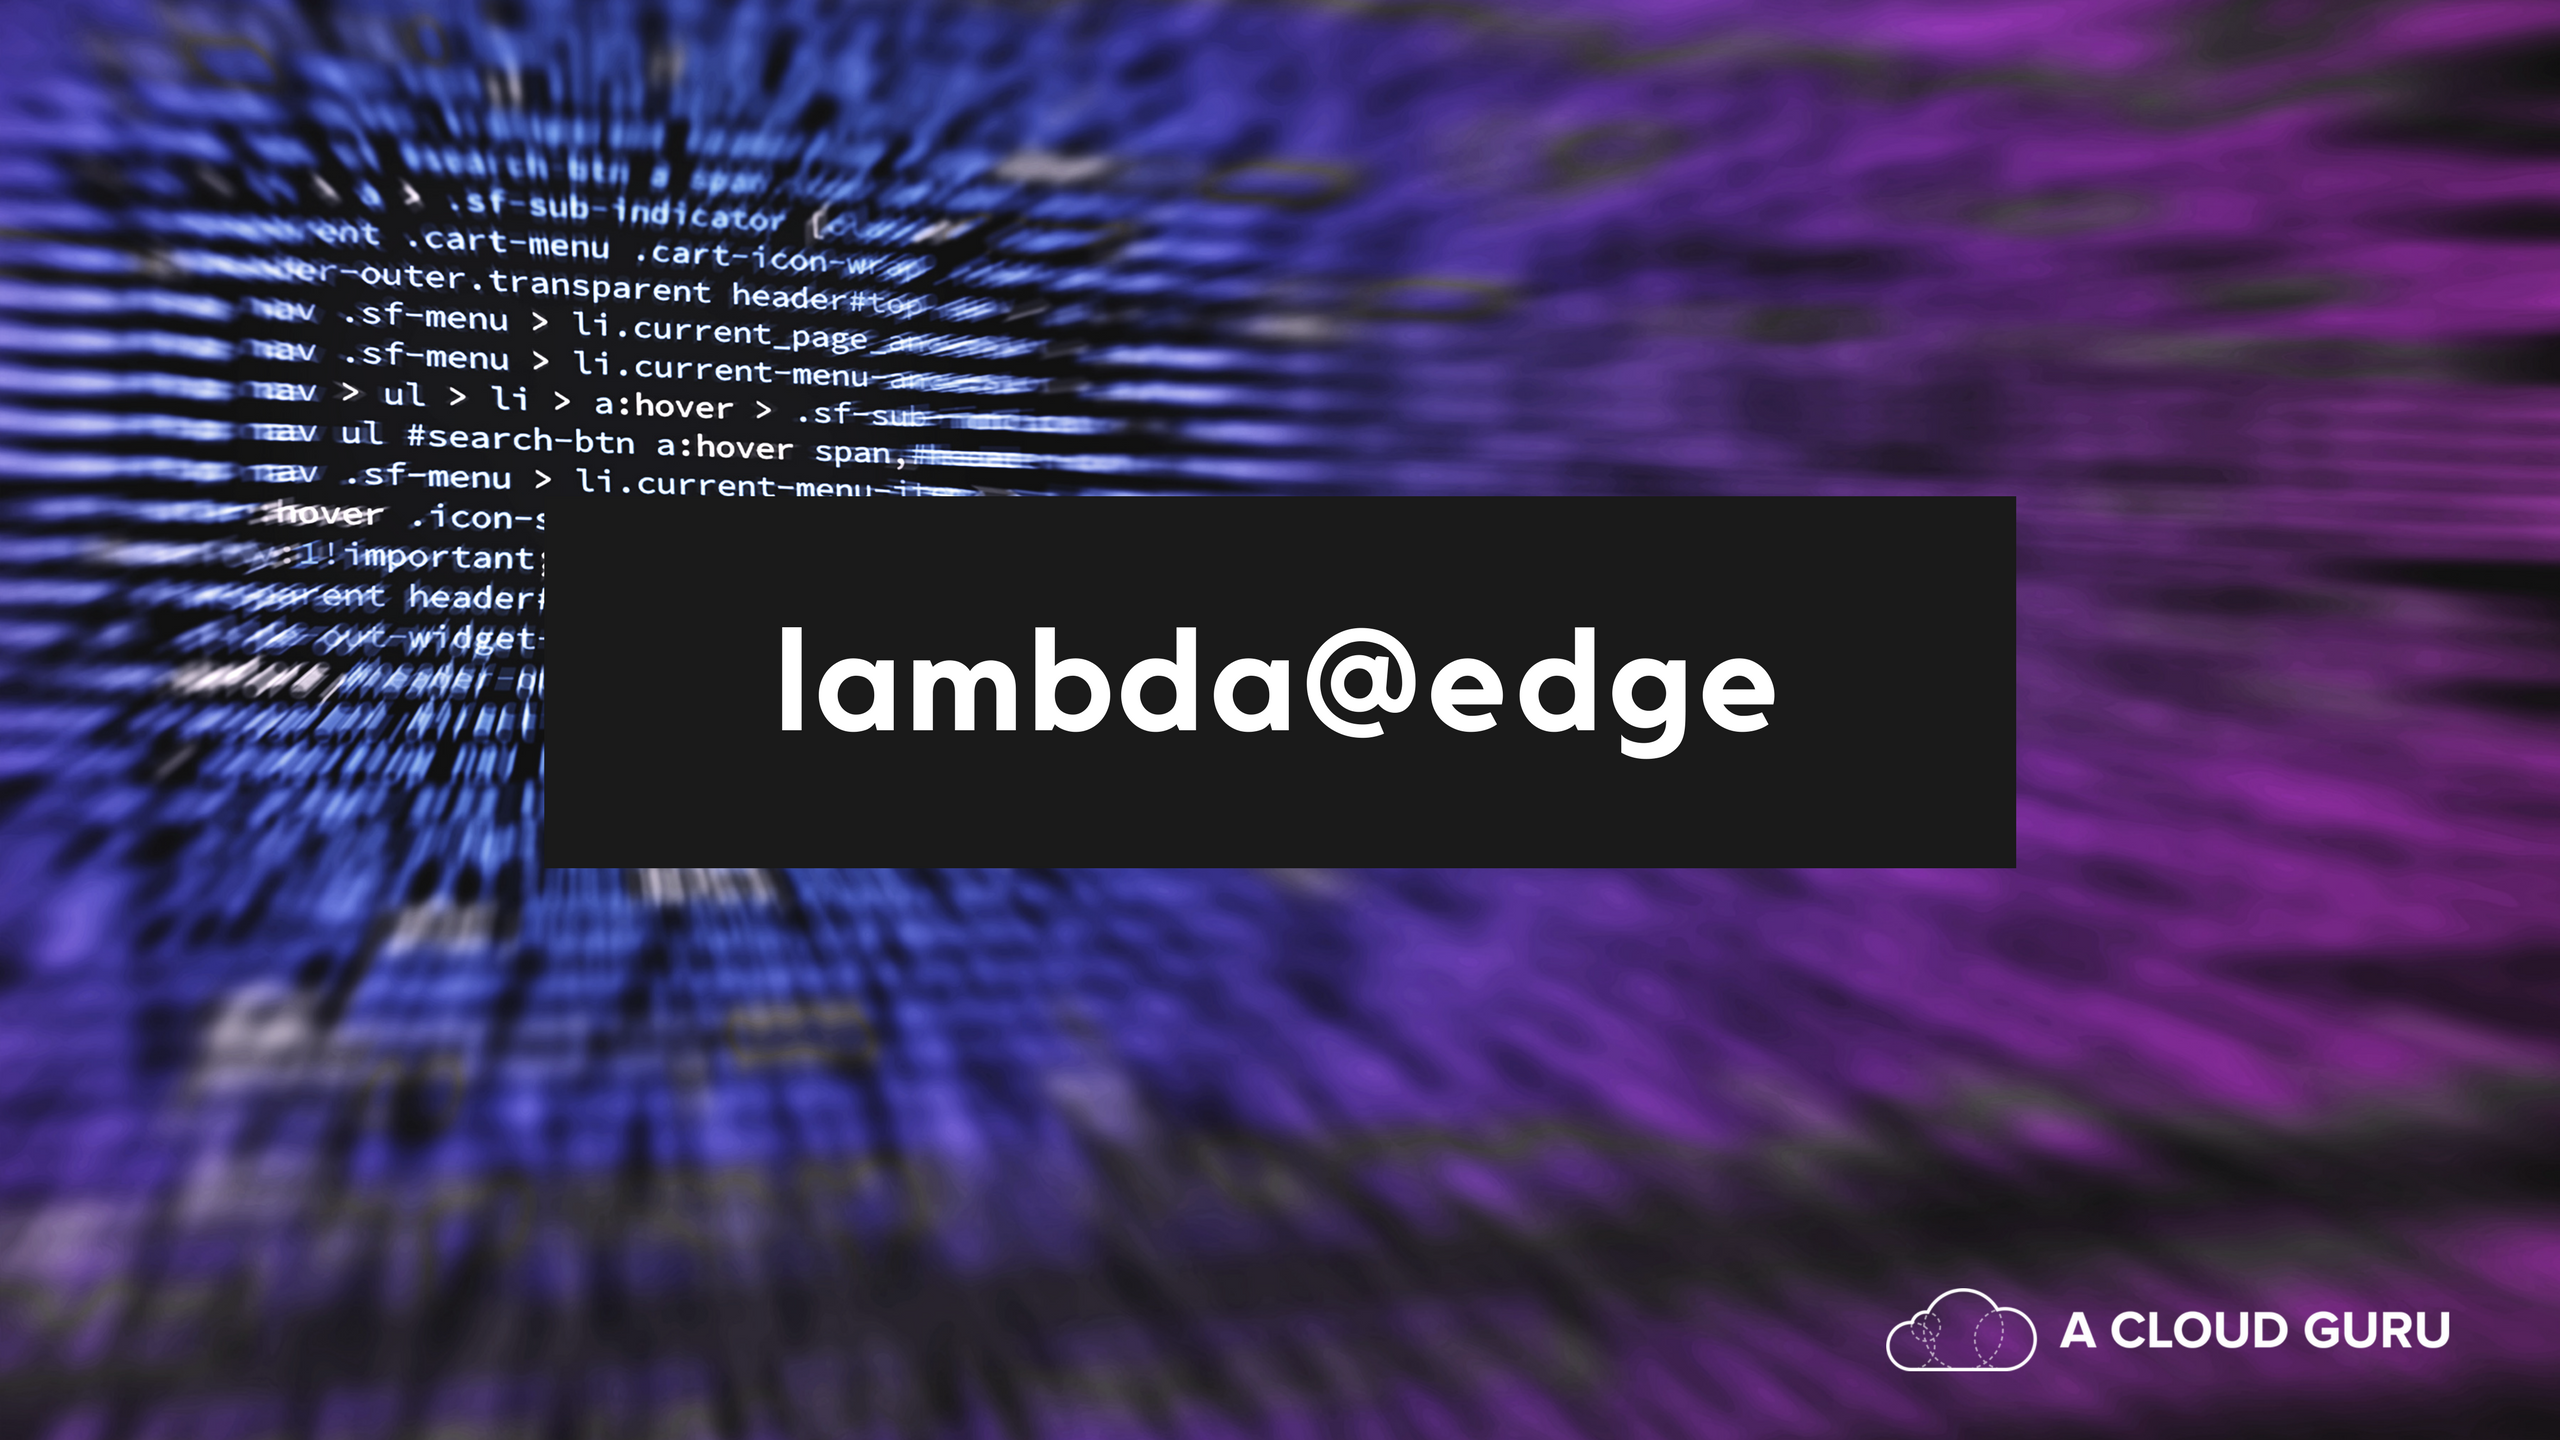 How to supercharge your static website with the power of AWS Lambda@Edge